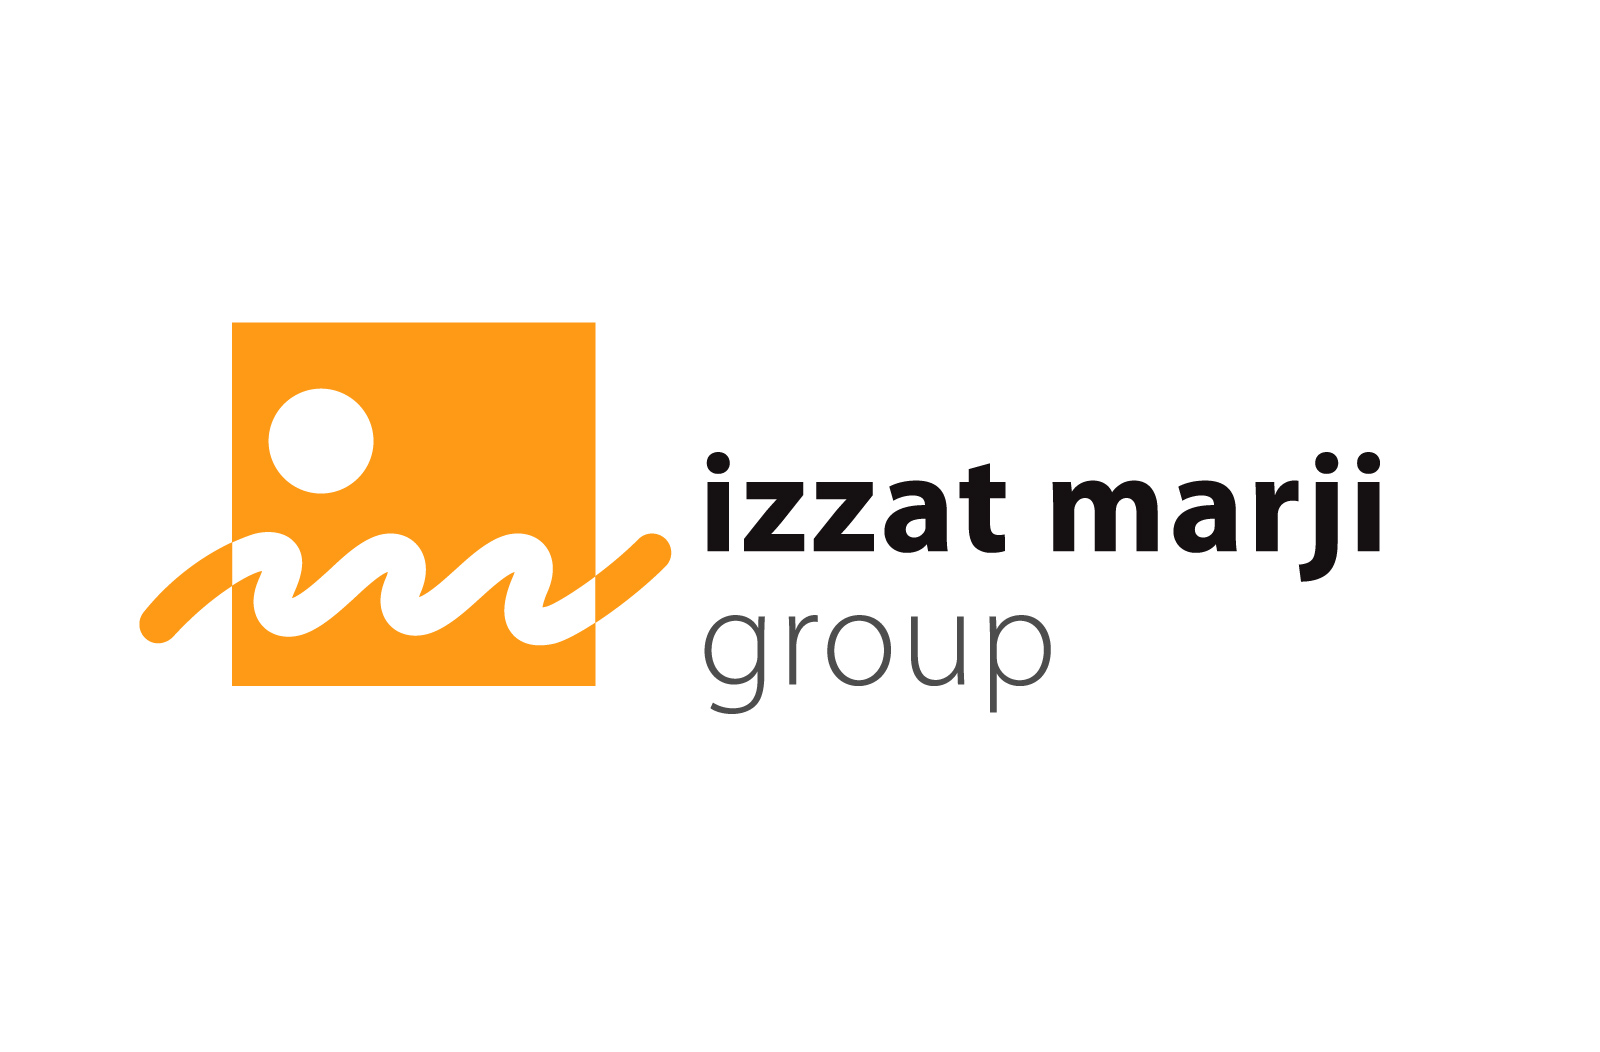 Izzat Marji Group logo designed by Creations